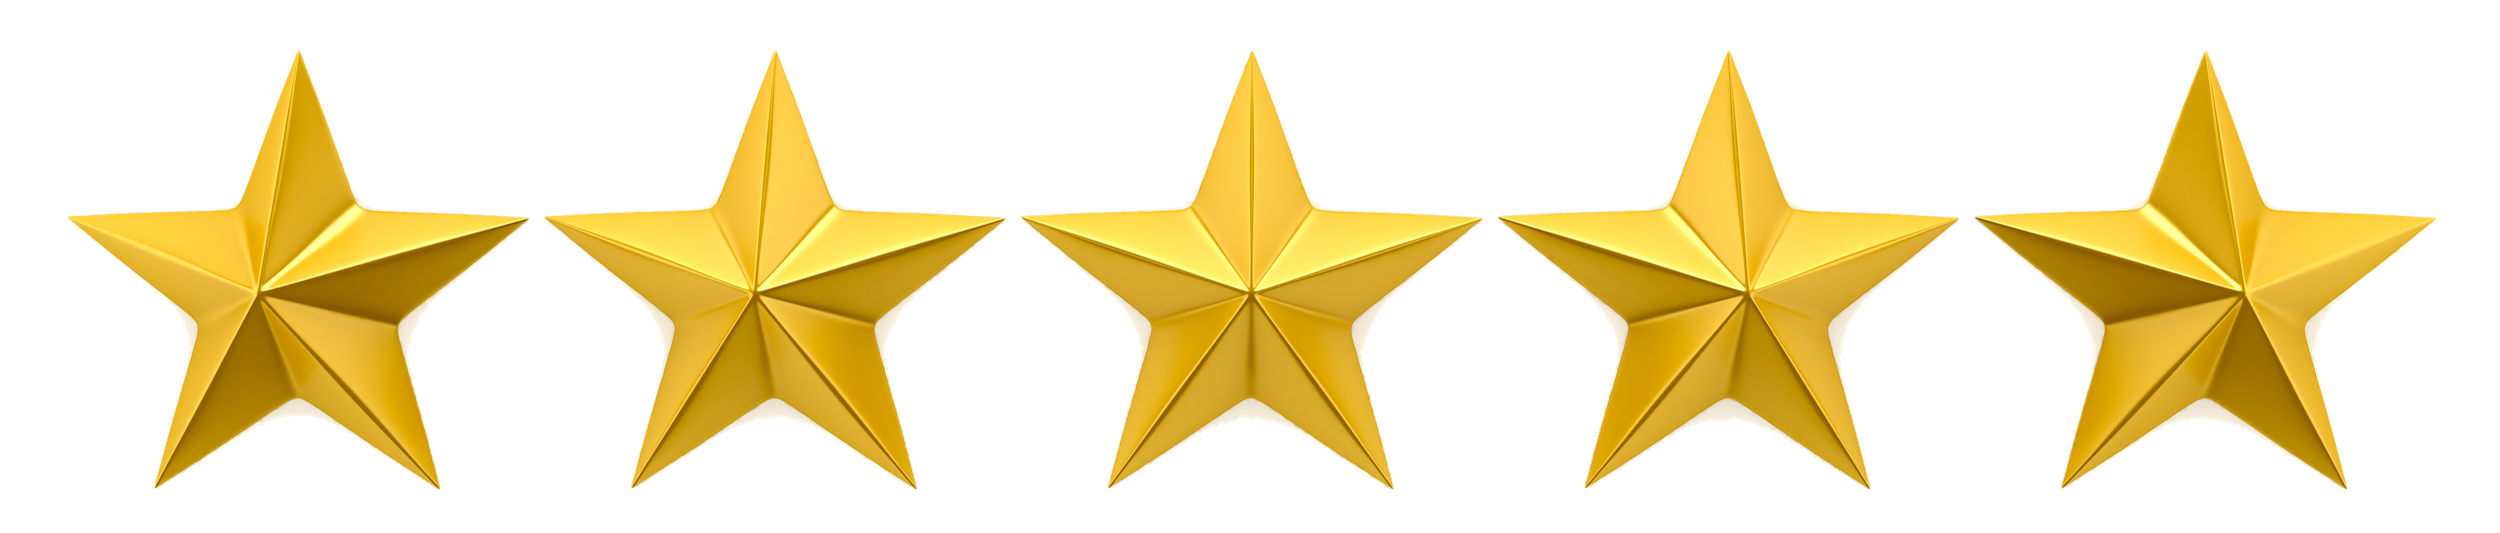 5 gold stars png. Reviews awards camelot beach